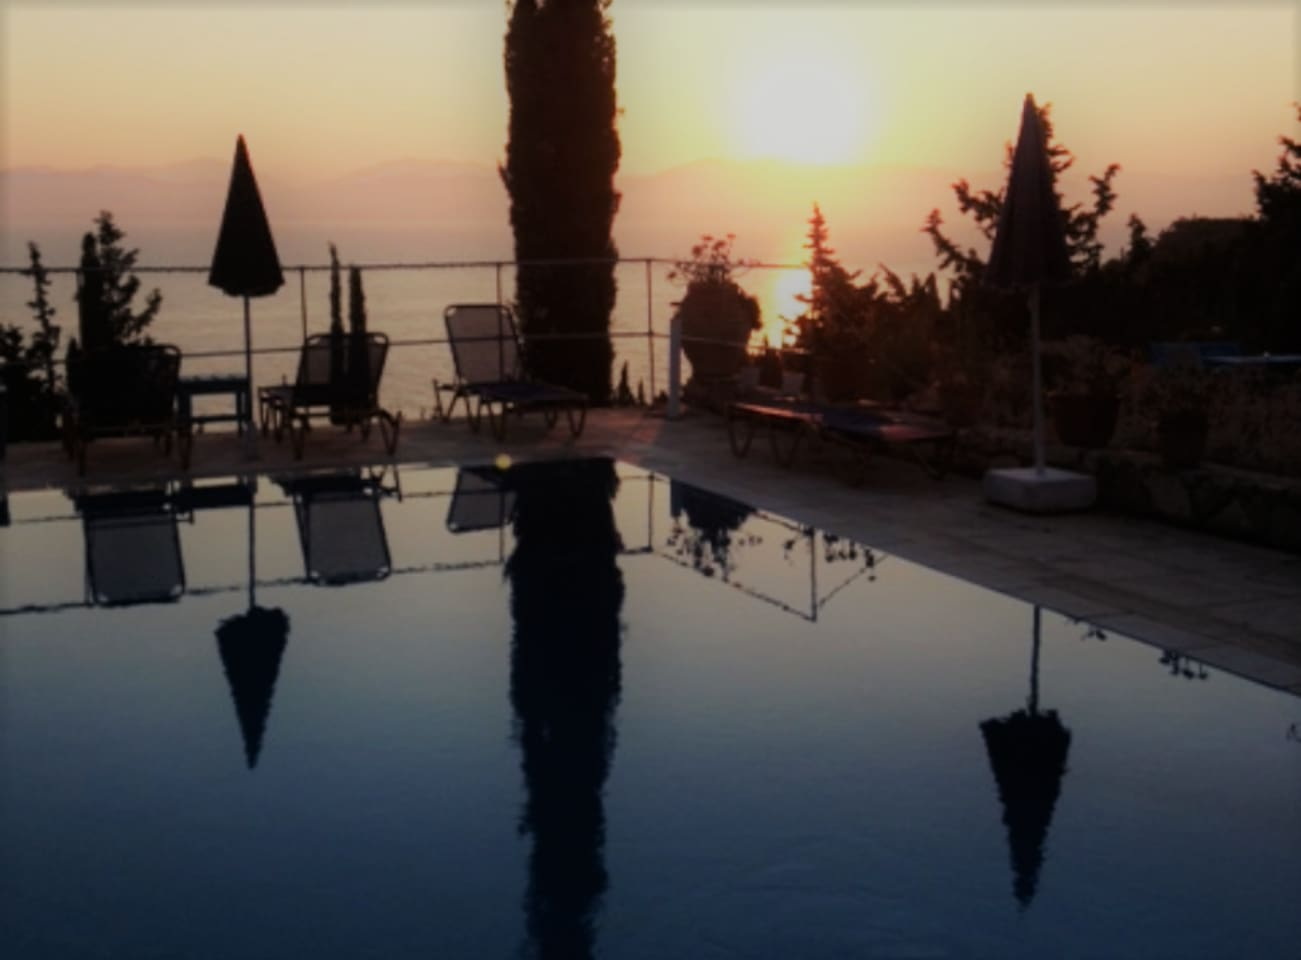 Sunset by the pool..